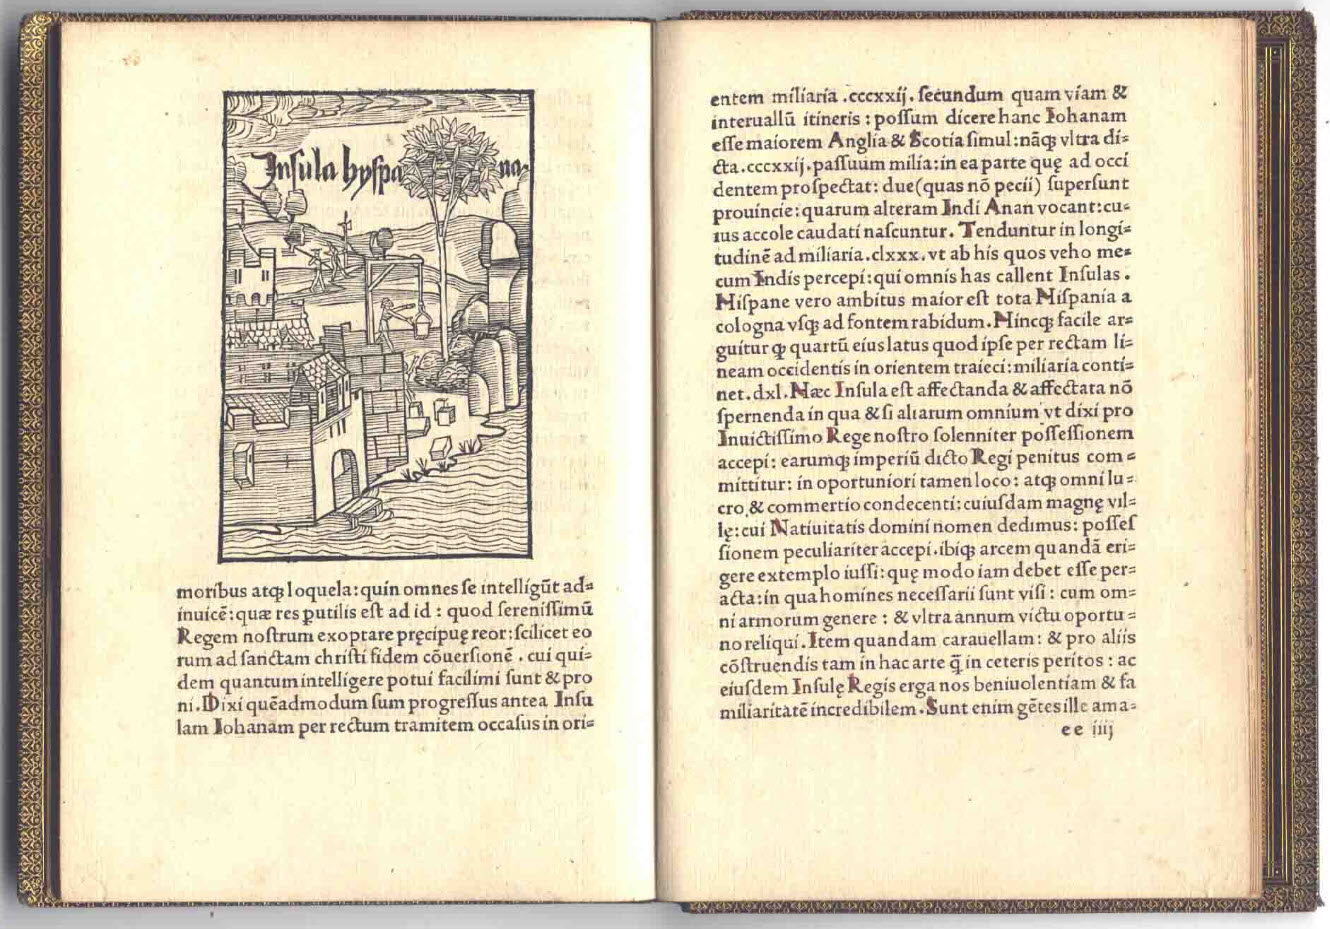 Christopher Columbus 1494 Book Letter Discovery America 08